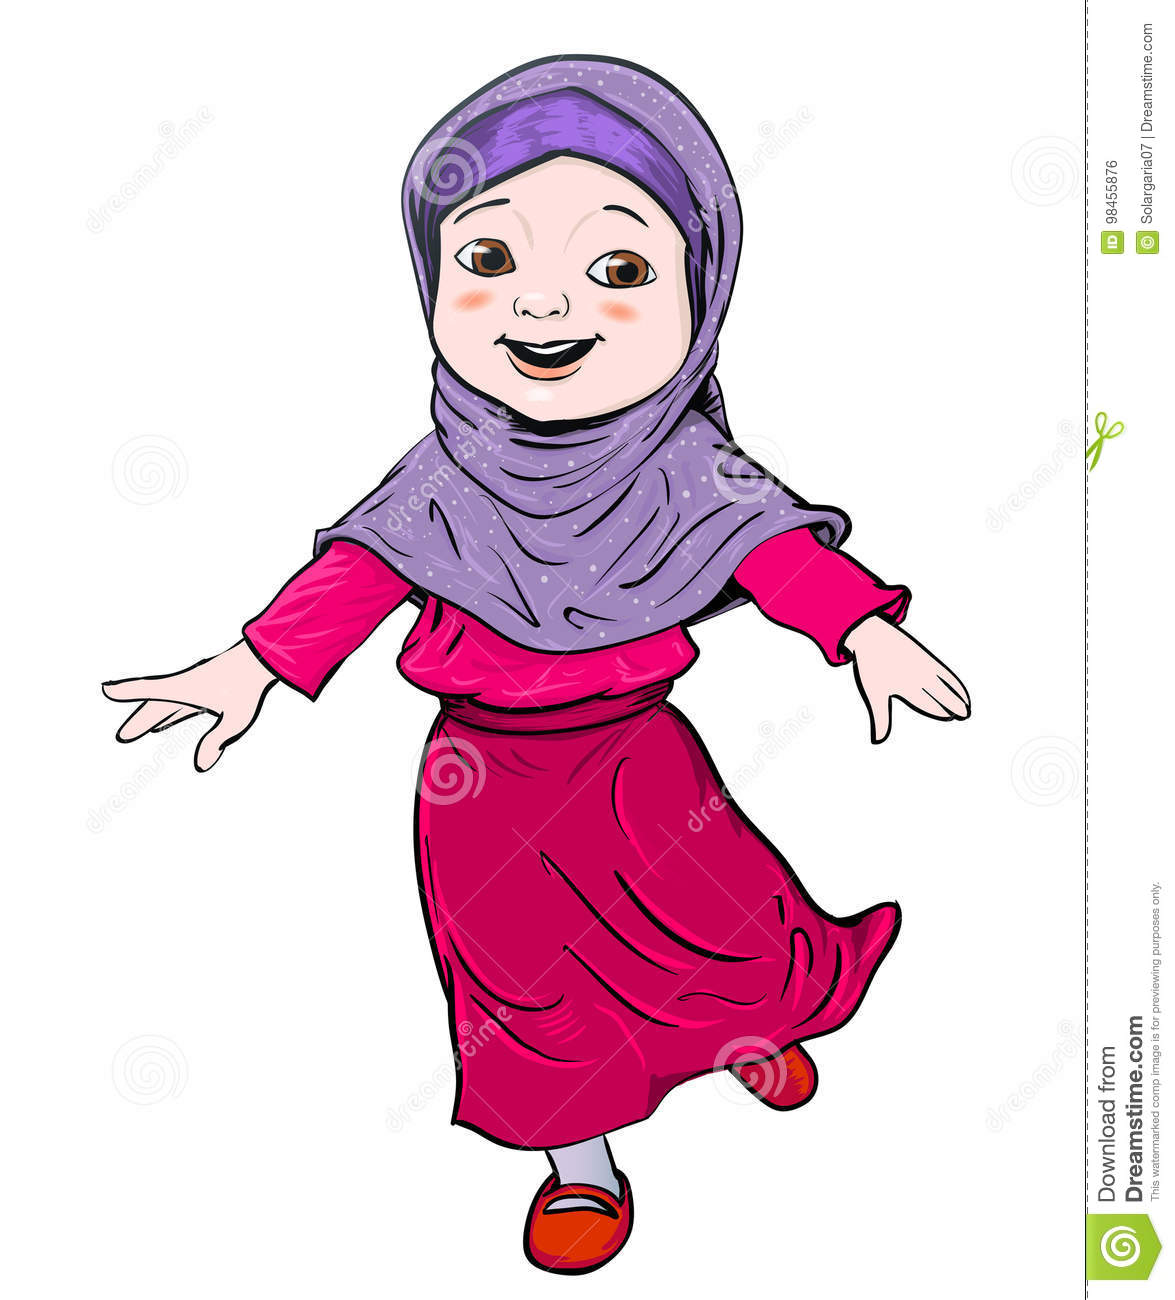 Image Result For Download A Cute Muslim Girl Cartoon Illustration Stock Vector Of Child Islamic